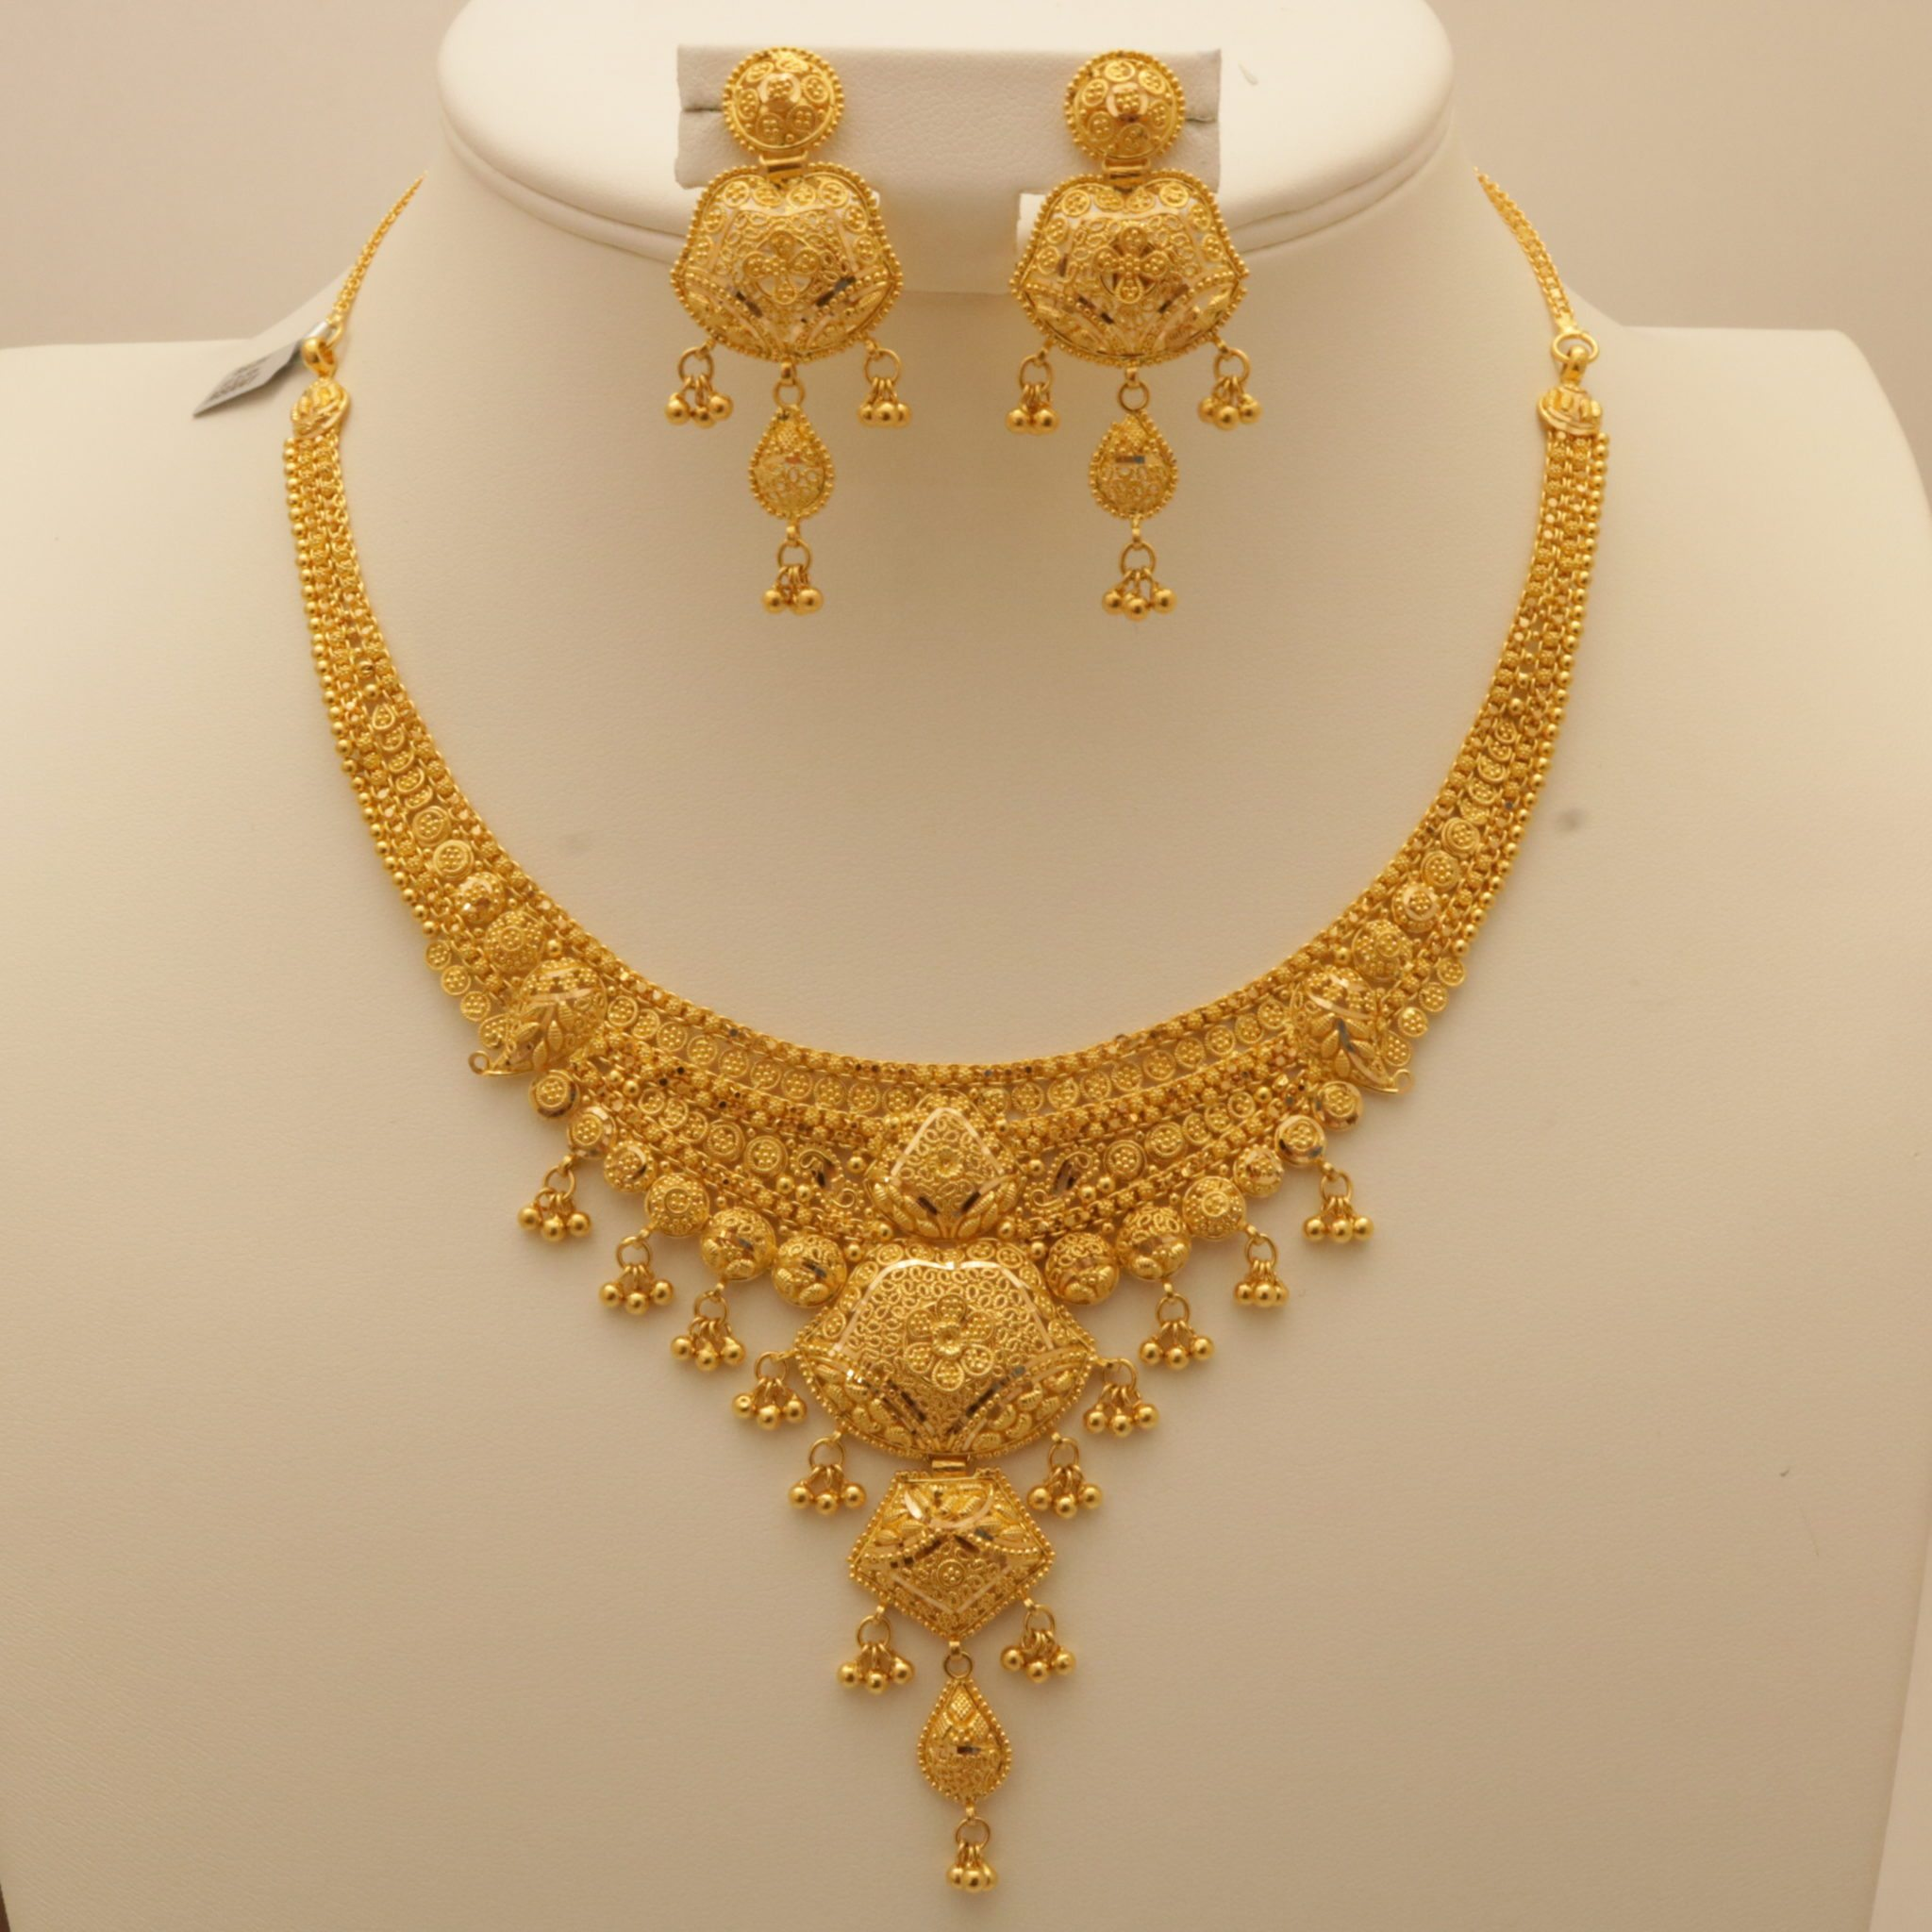 gold jewelry photos antique necklace hd gram inspirational new indian wallpaper of